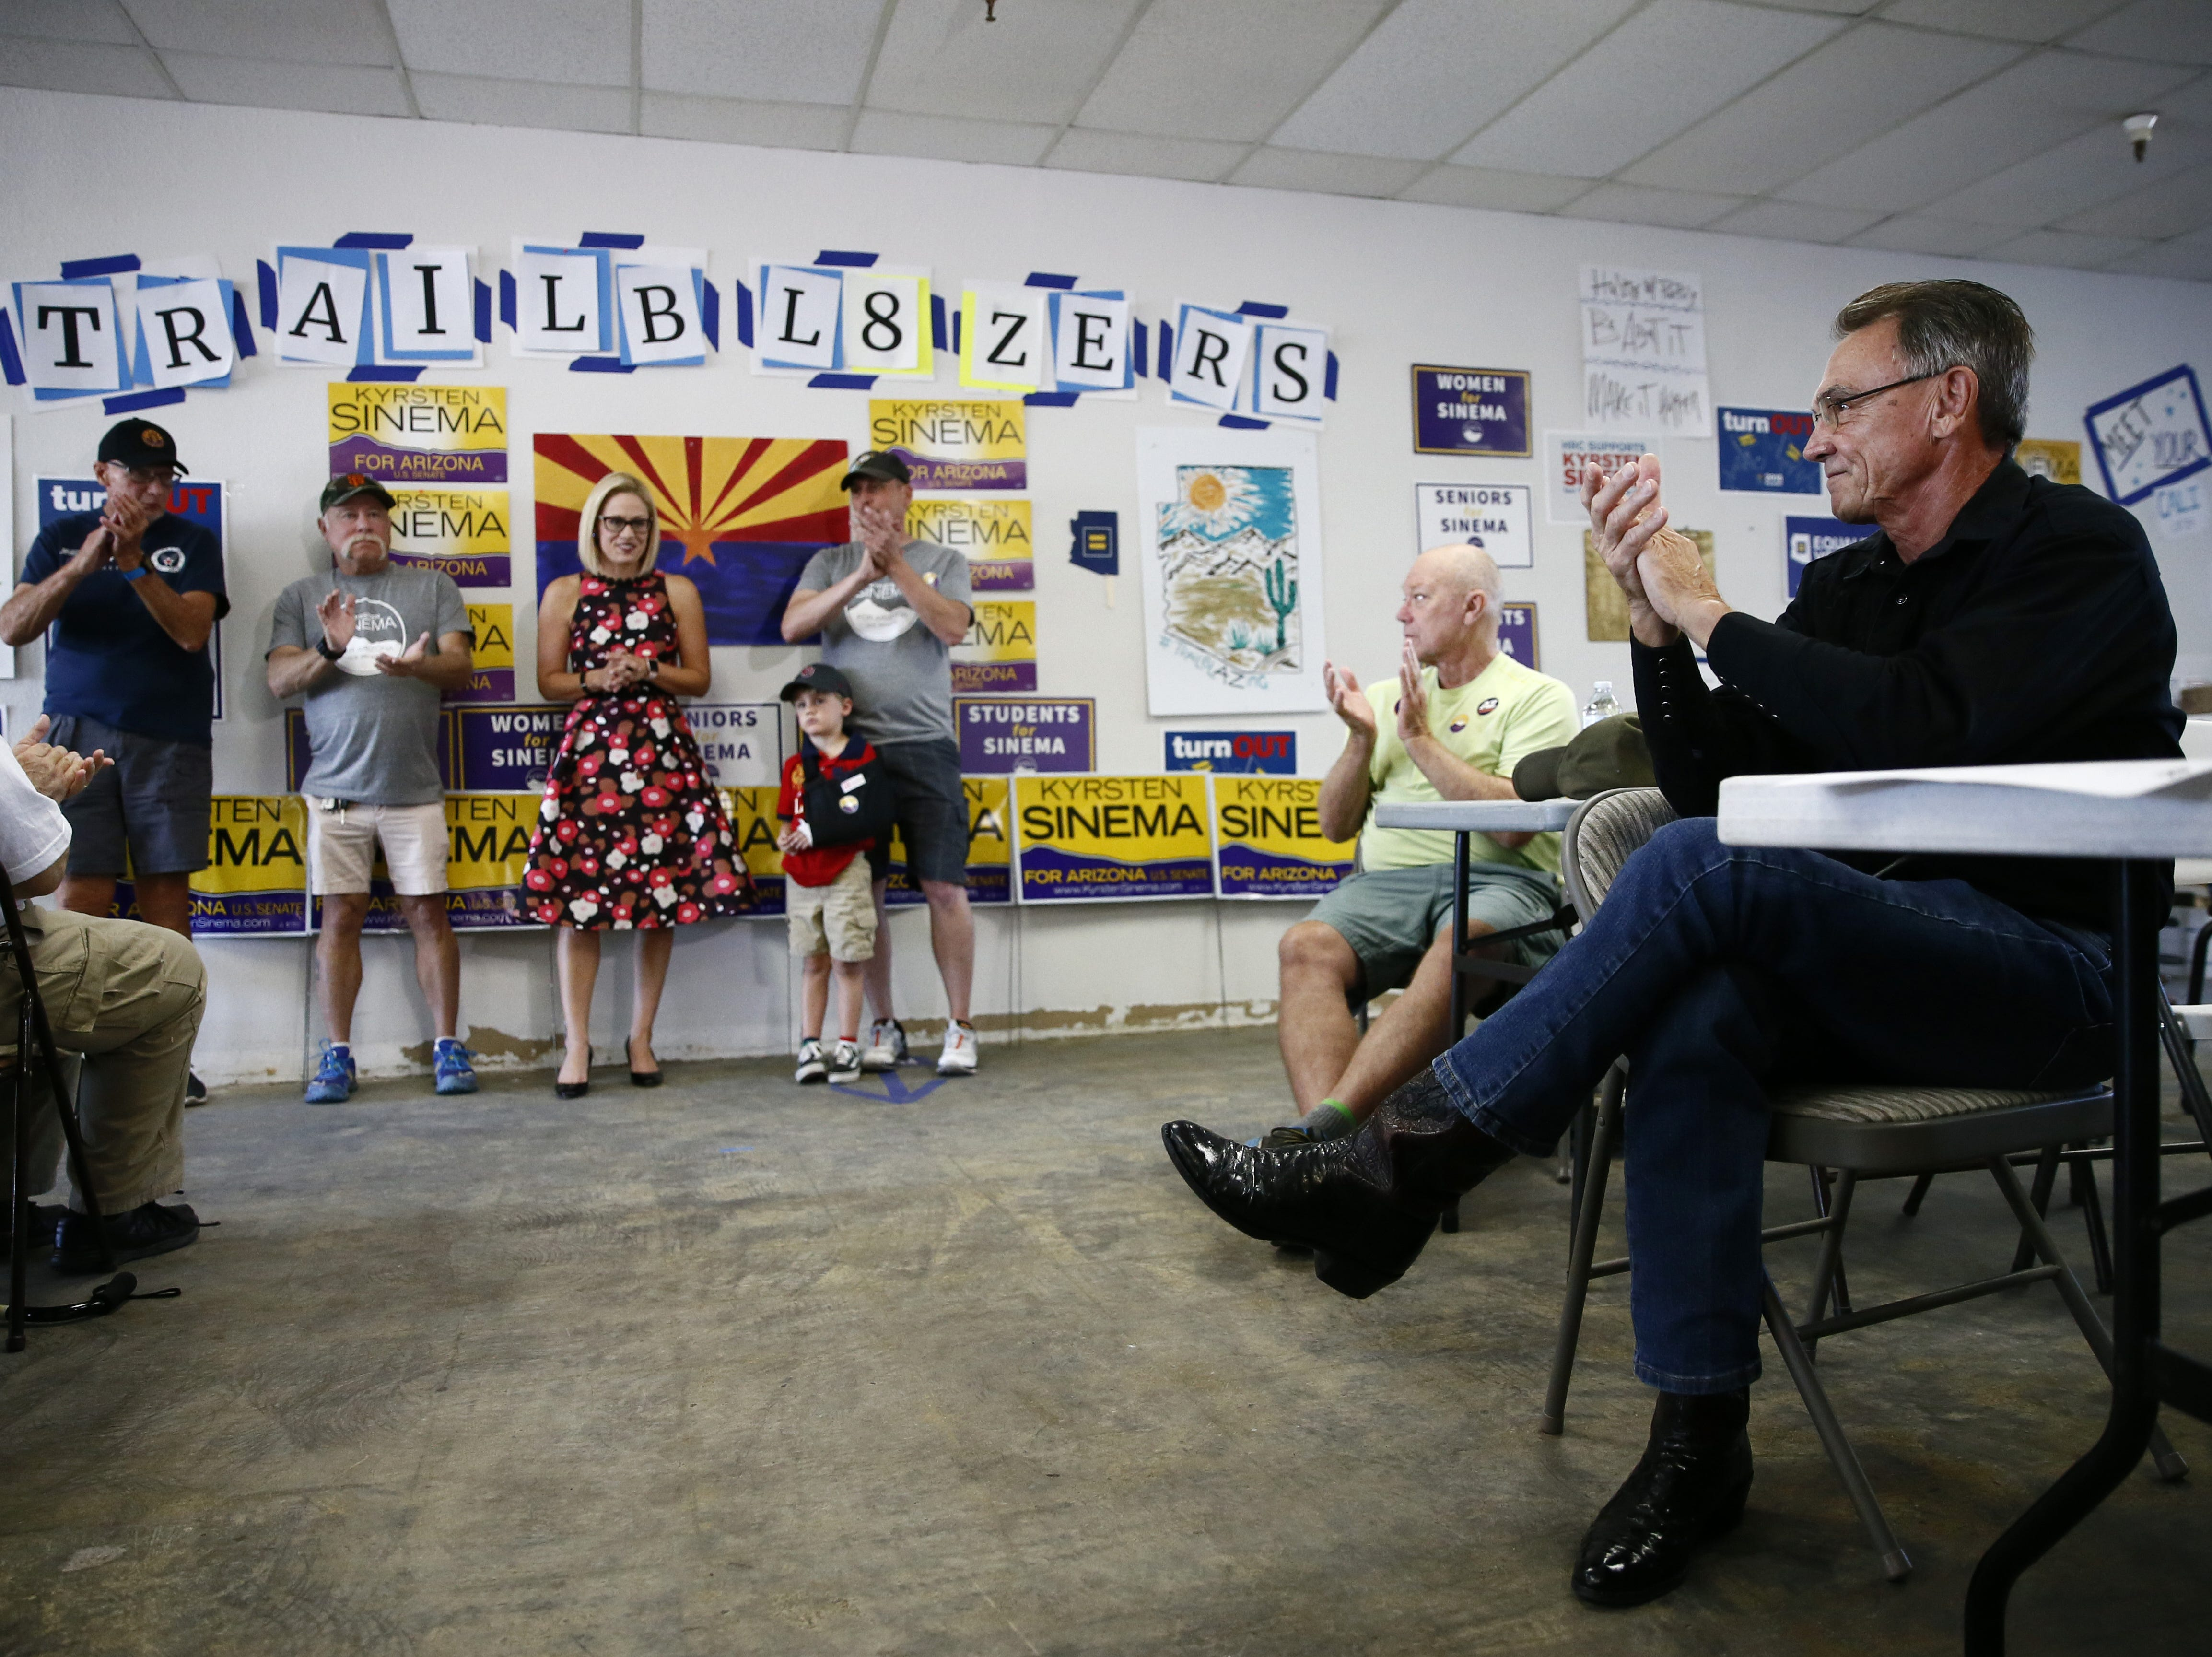 Kyrsten Sinema, the Democratic candidate for the U.S. Senate appears at a get-out-the-vote event with members of the Veterans for Sinema coalition and volunteers on Nov. 1 in Phoenix.